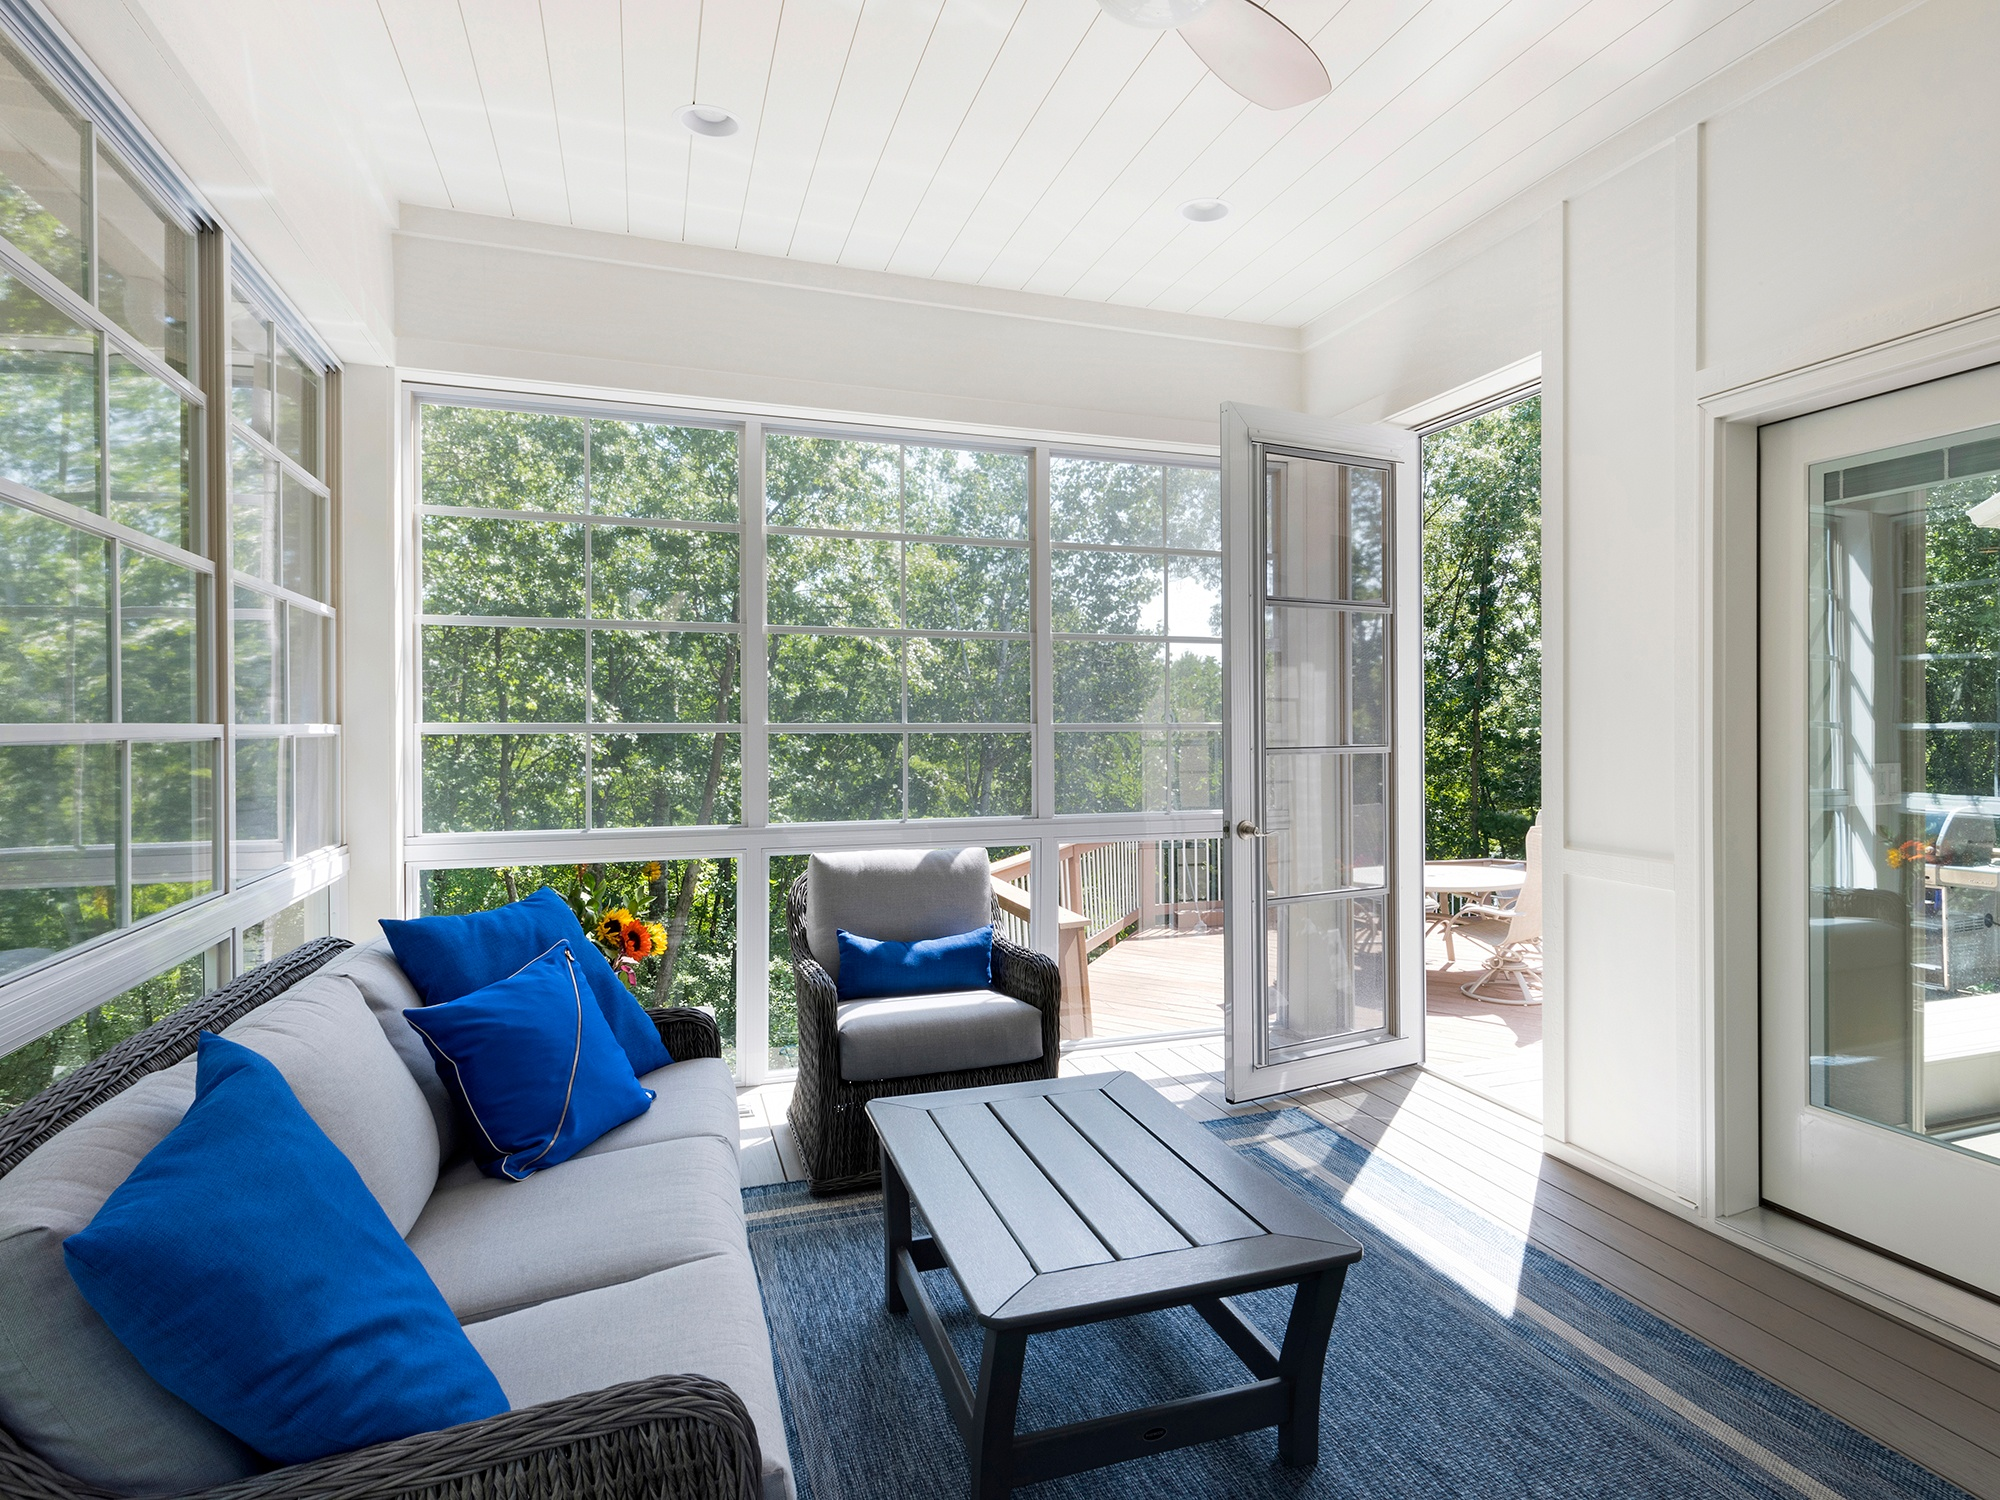 Heating And Cooling Your 3 Season Porch Video